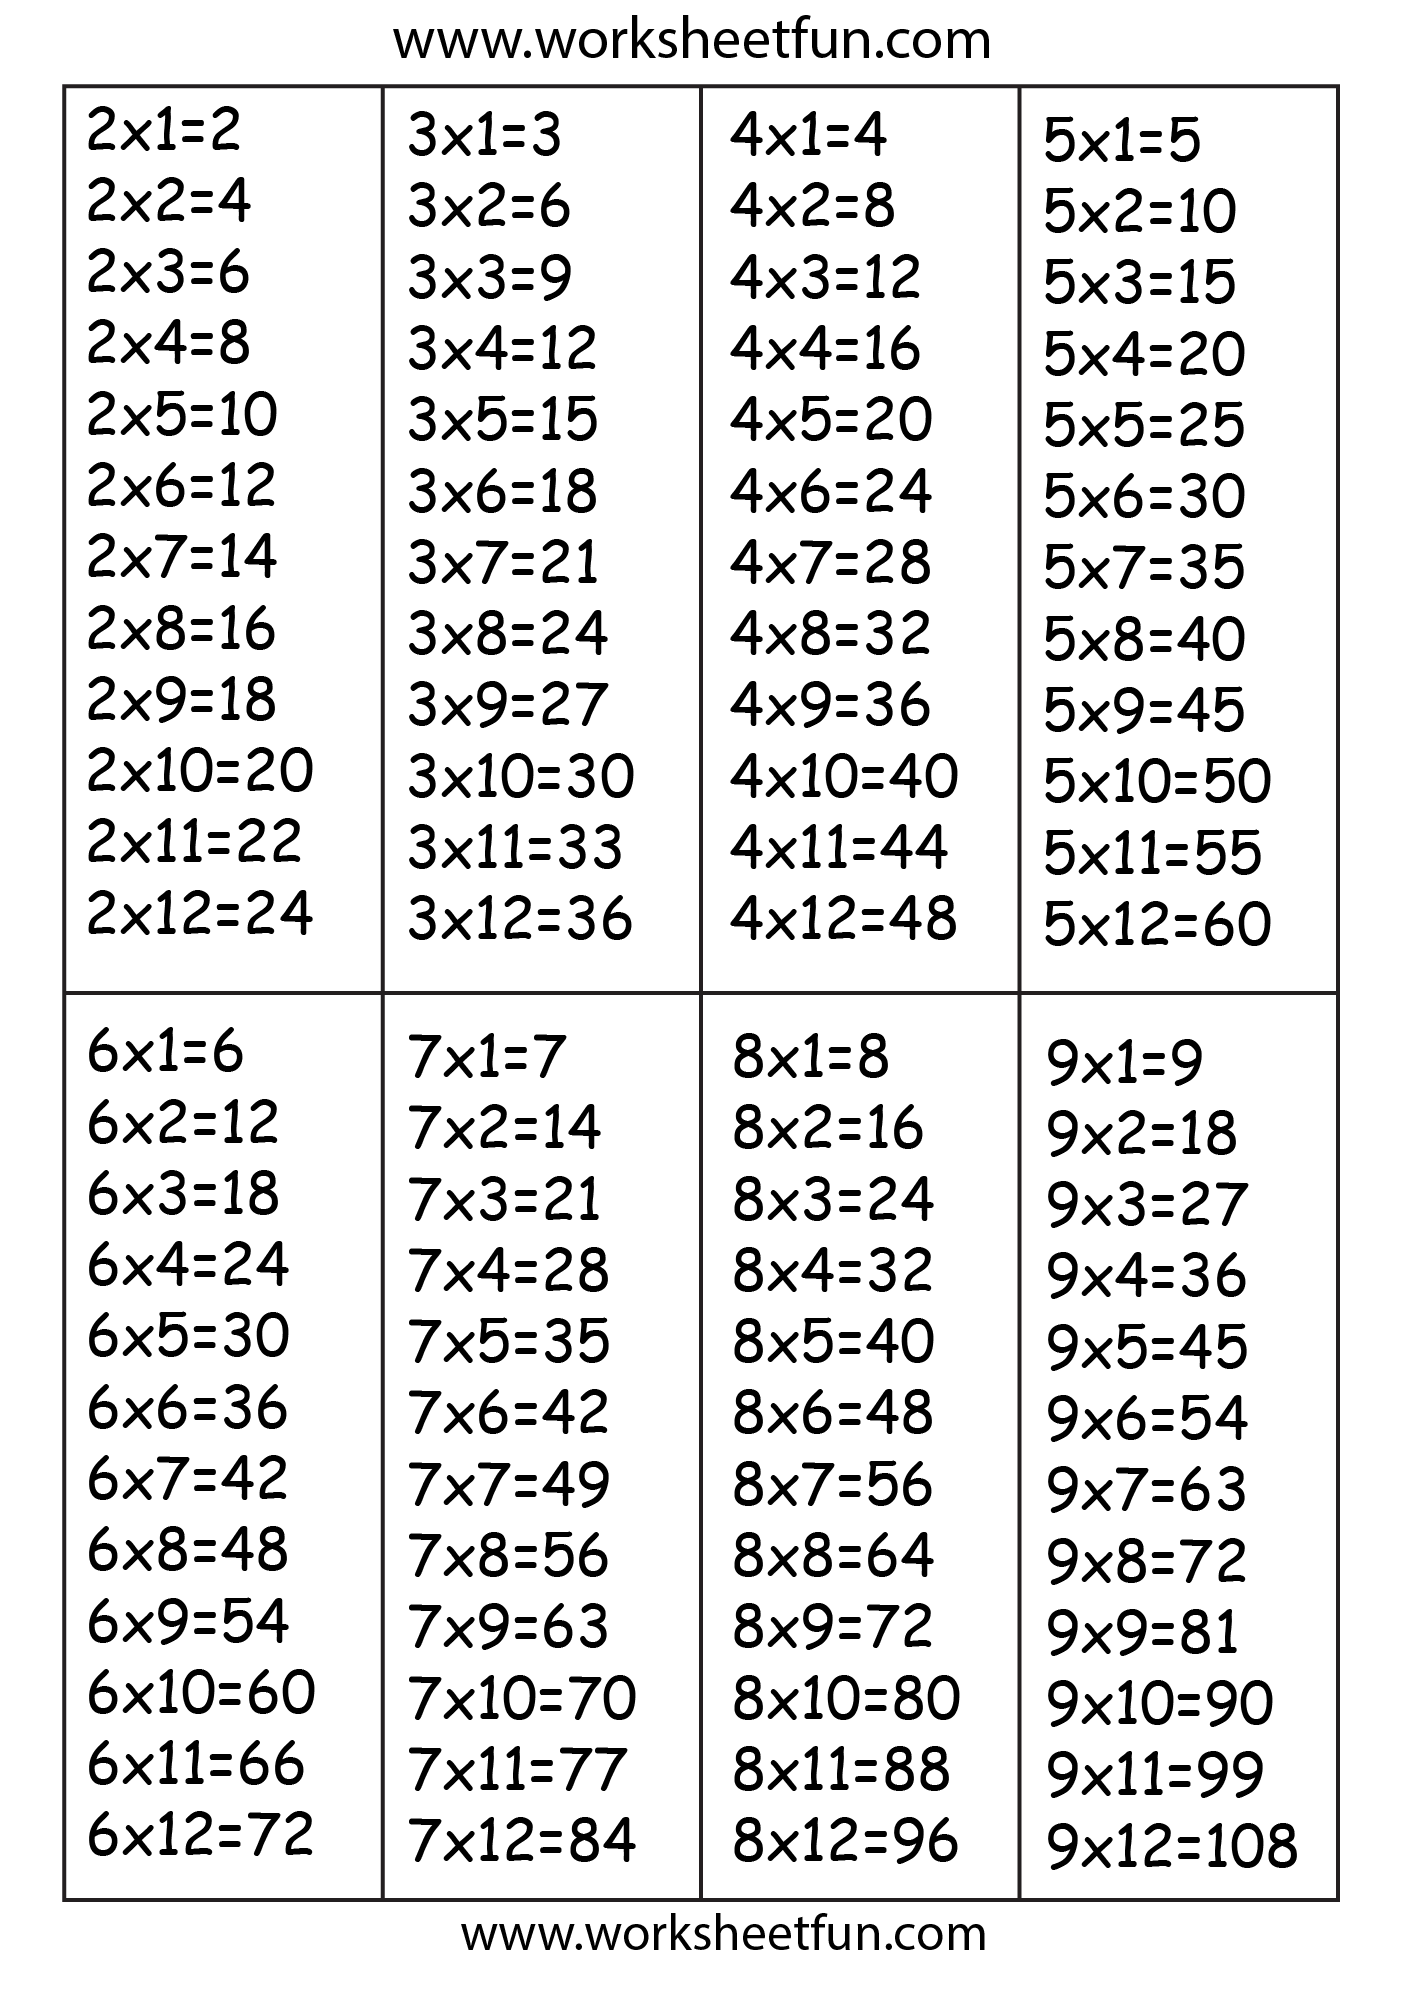 Times Table 2 Times Table Free Printable Worksheets Worksheetfun